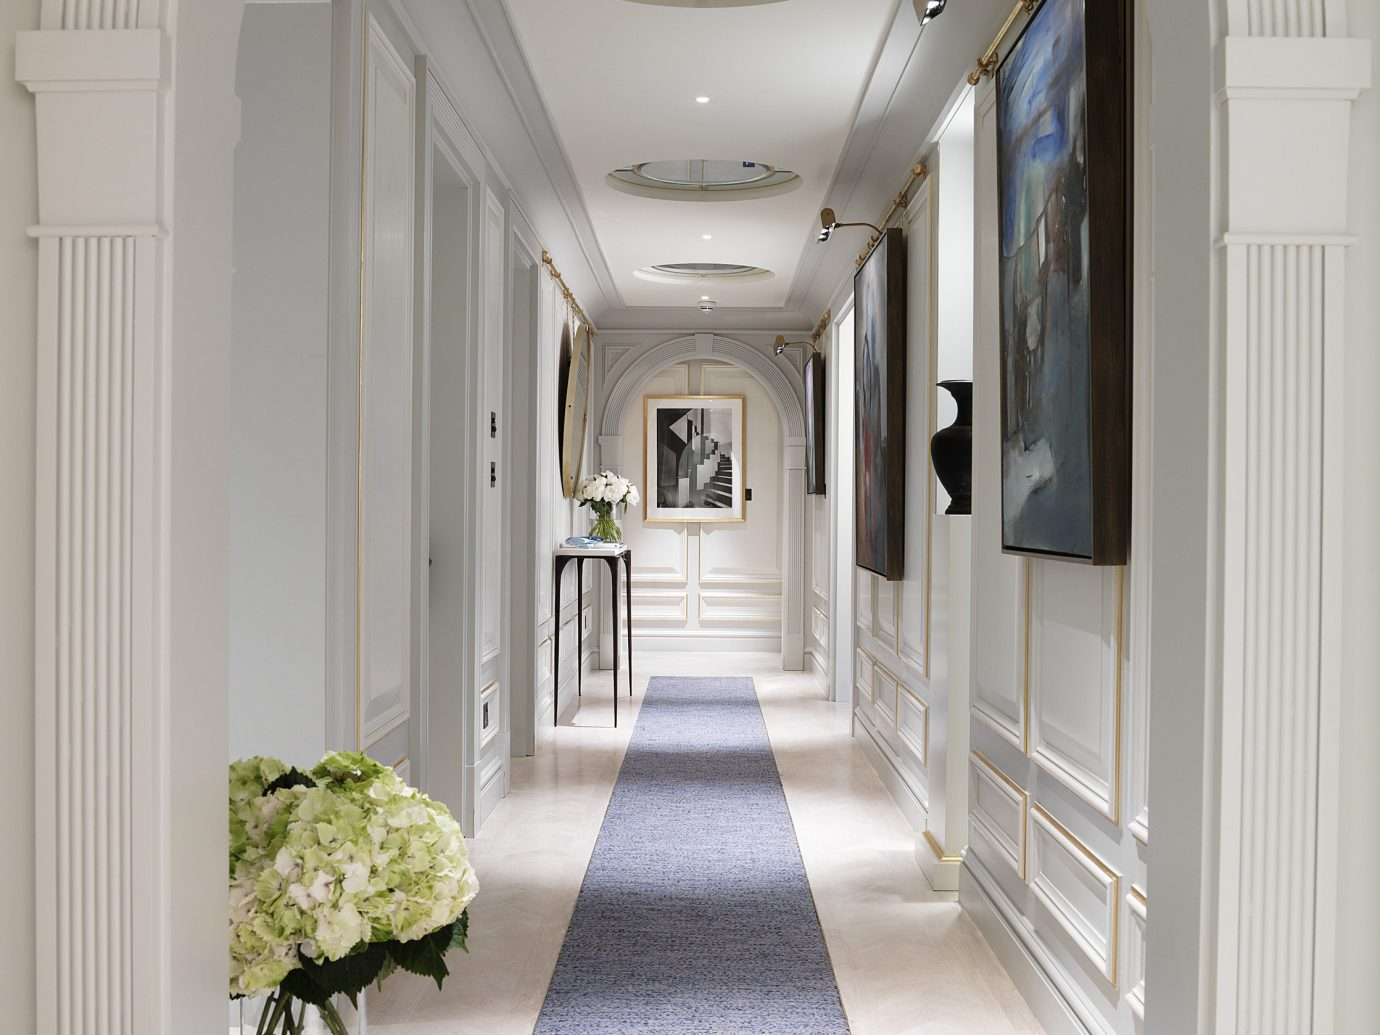 Hotels London Luxury Travel indoor wall floor building property room estate home Architecture mansion hall interior design ceiling arch living room real estate Design furniture